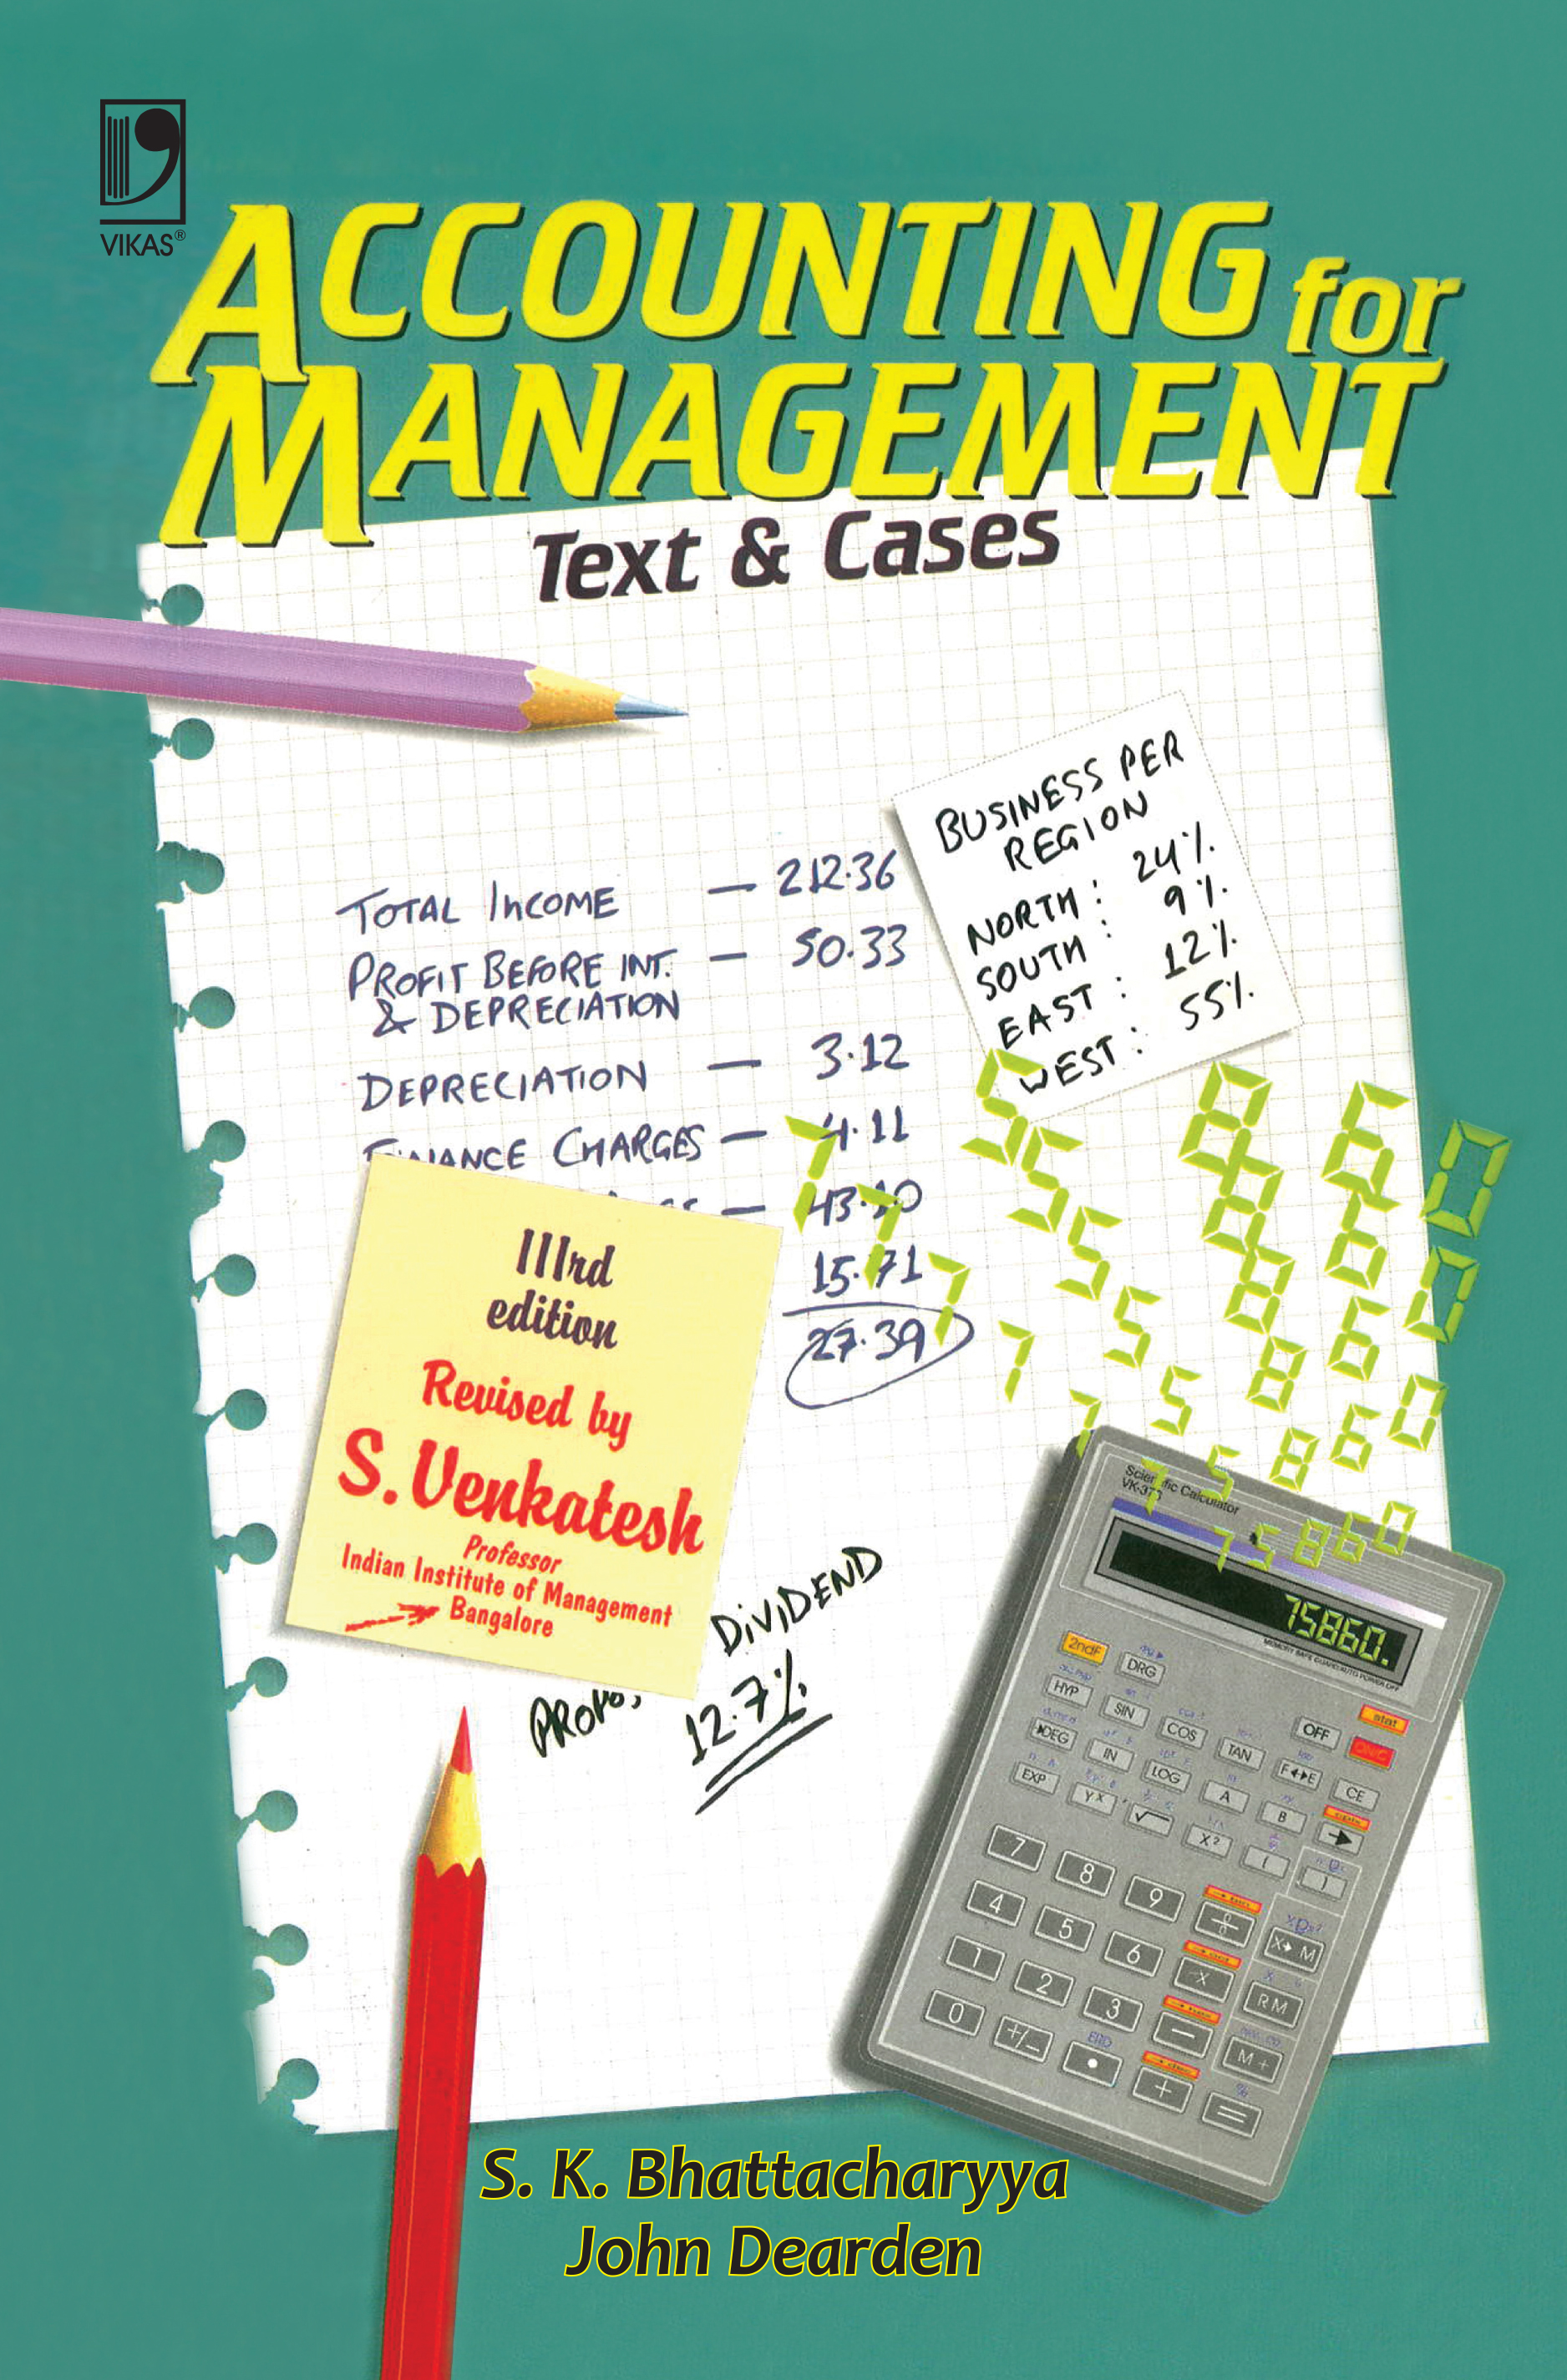 Accounting for Management: Text and Cases, 3/e